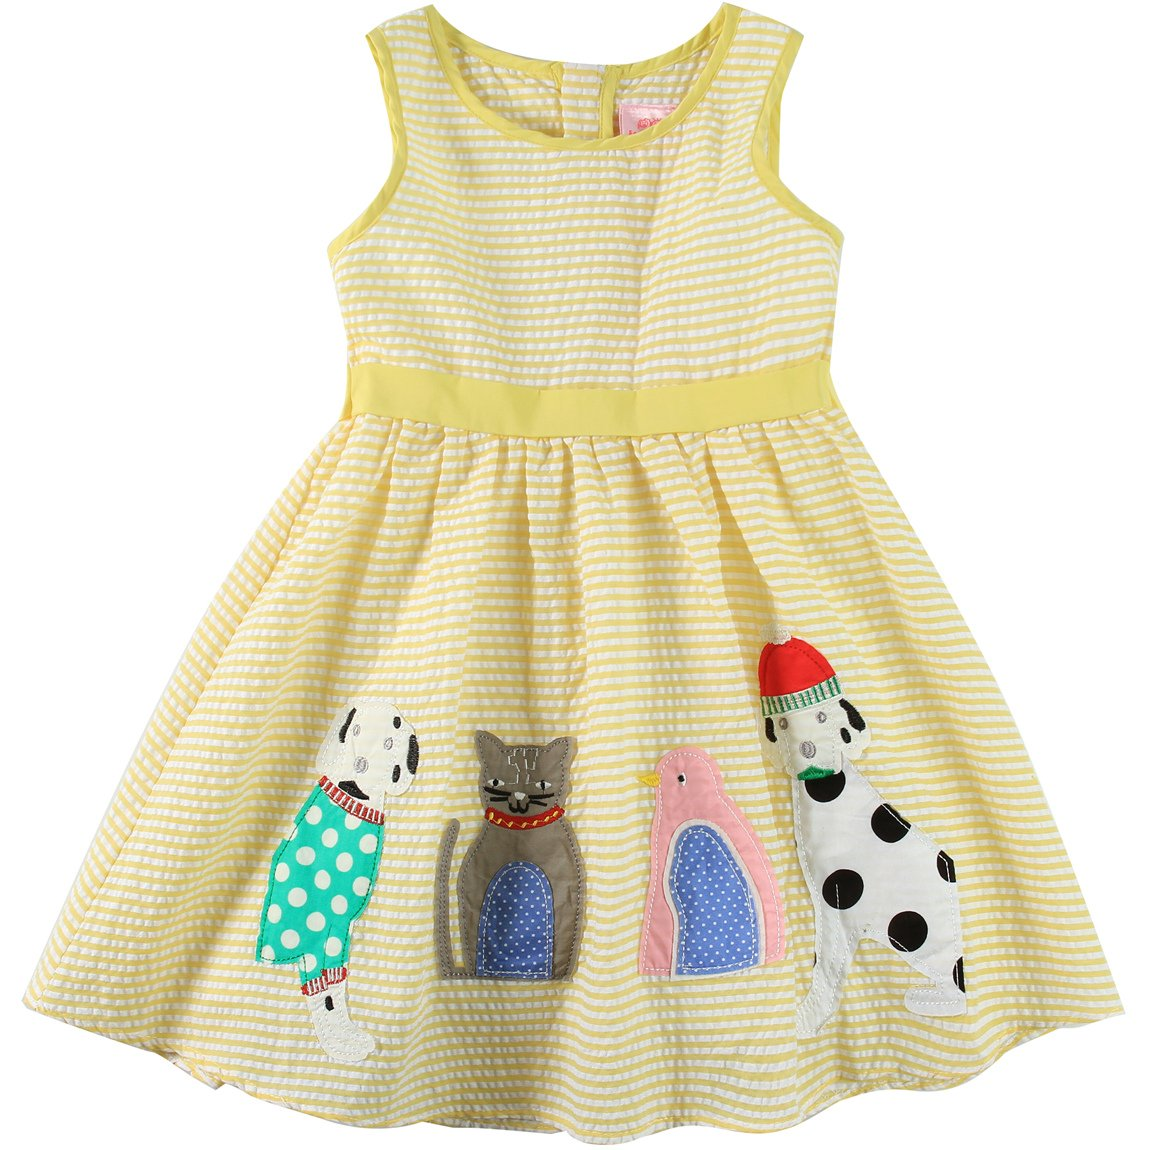 Sharequeen Girls Dress Animal Embroidery Double Bow Tie Party Sundress Yellow A090 (Yellow Stripe, 4-5 Years)